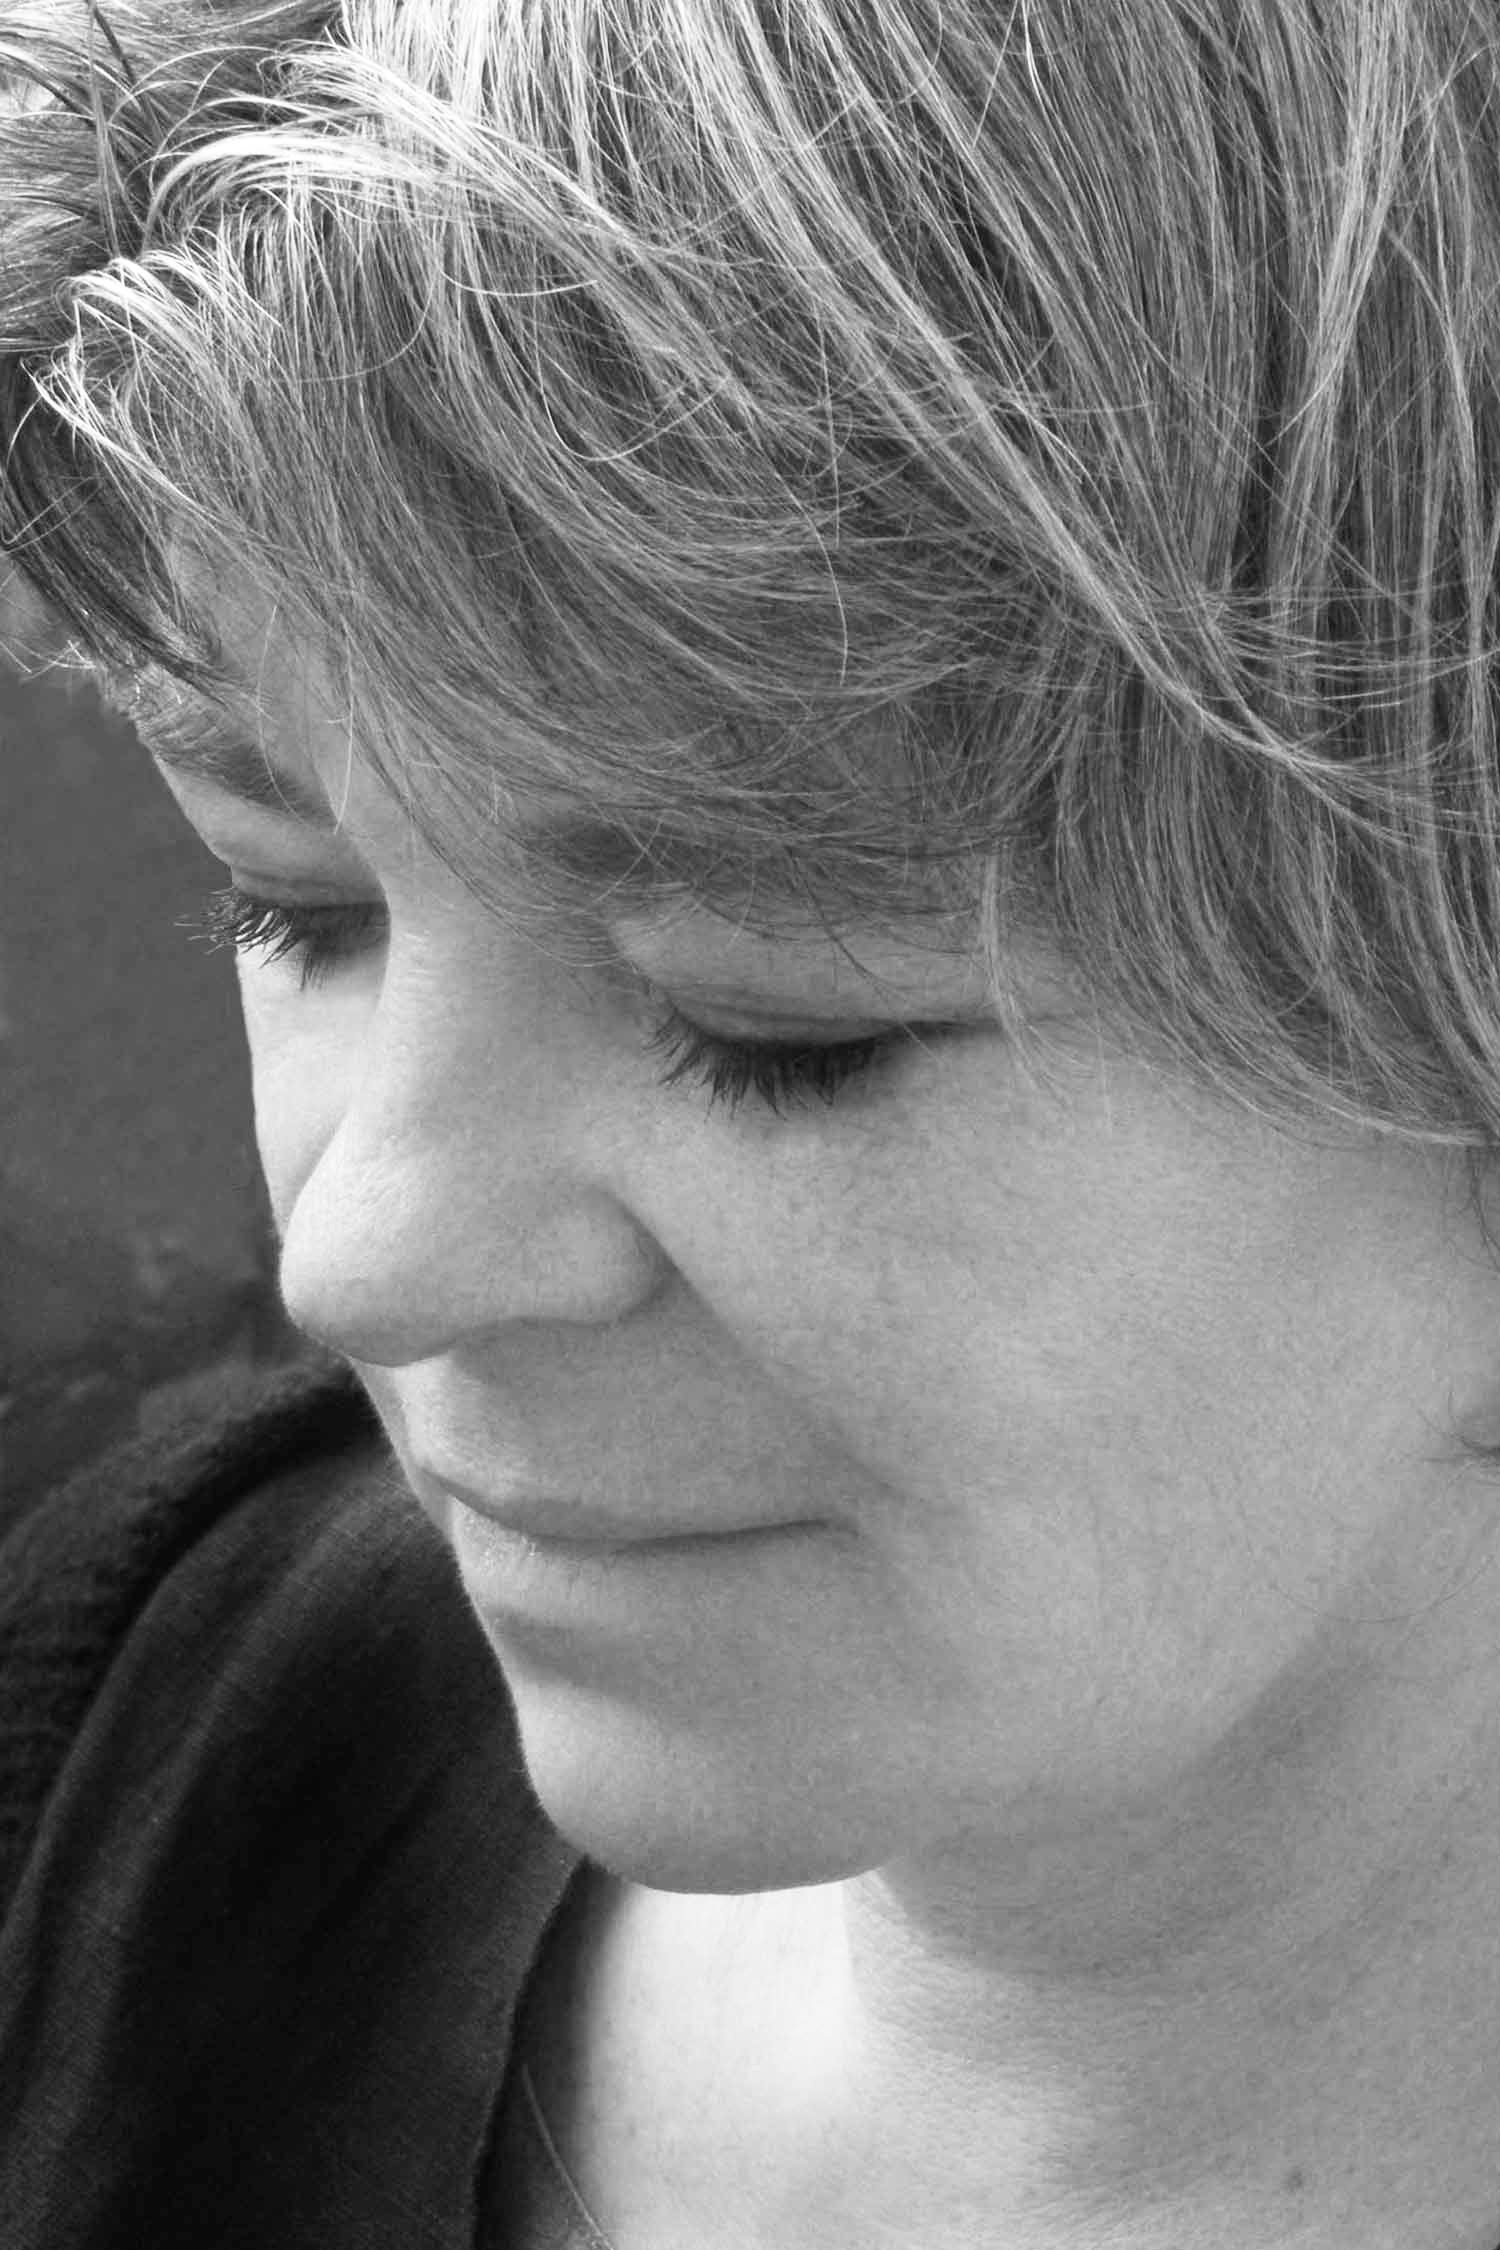 Image of Monica Beurer from Wikidata